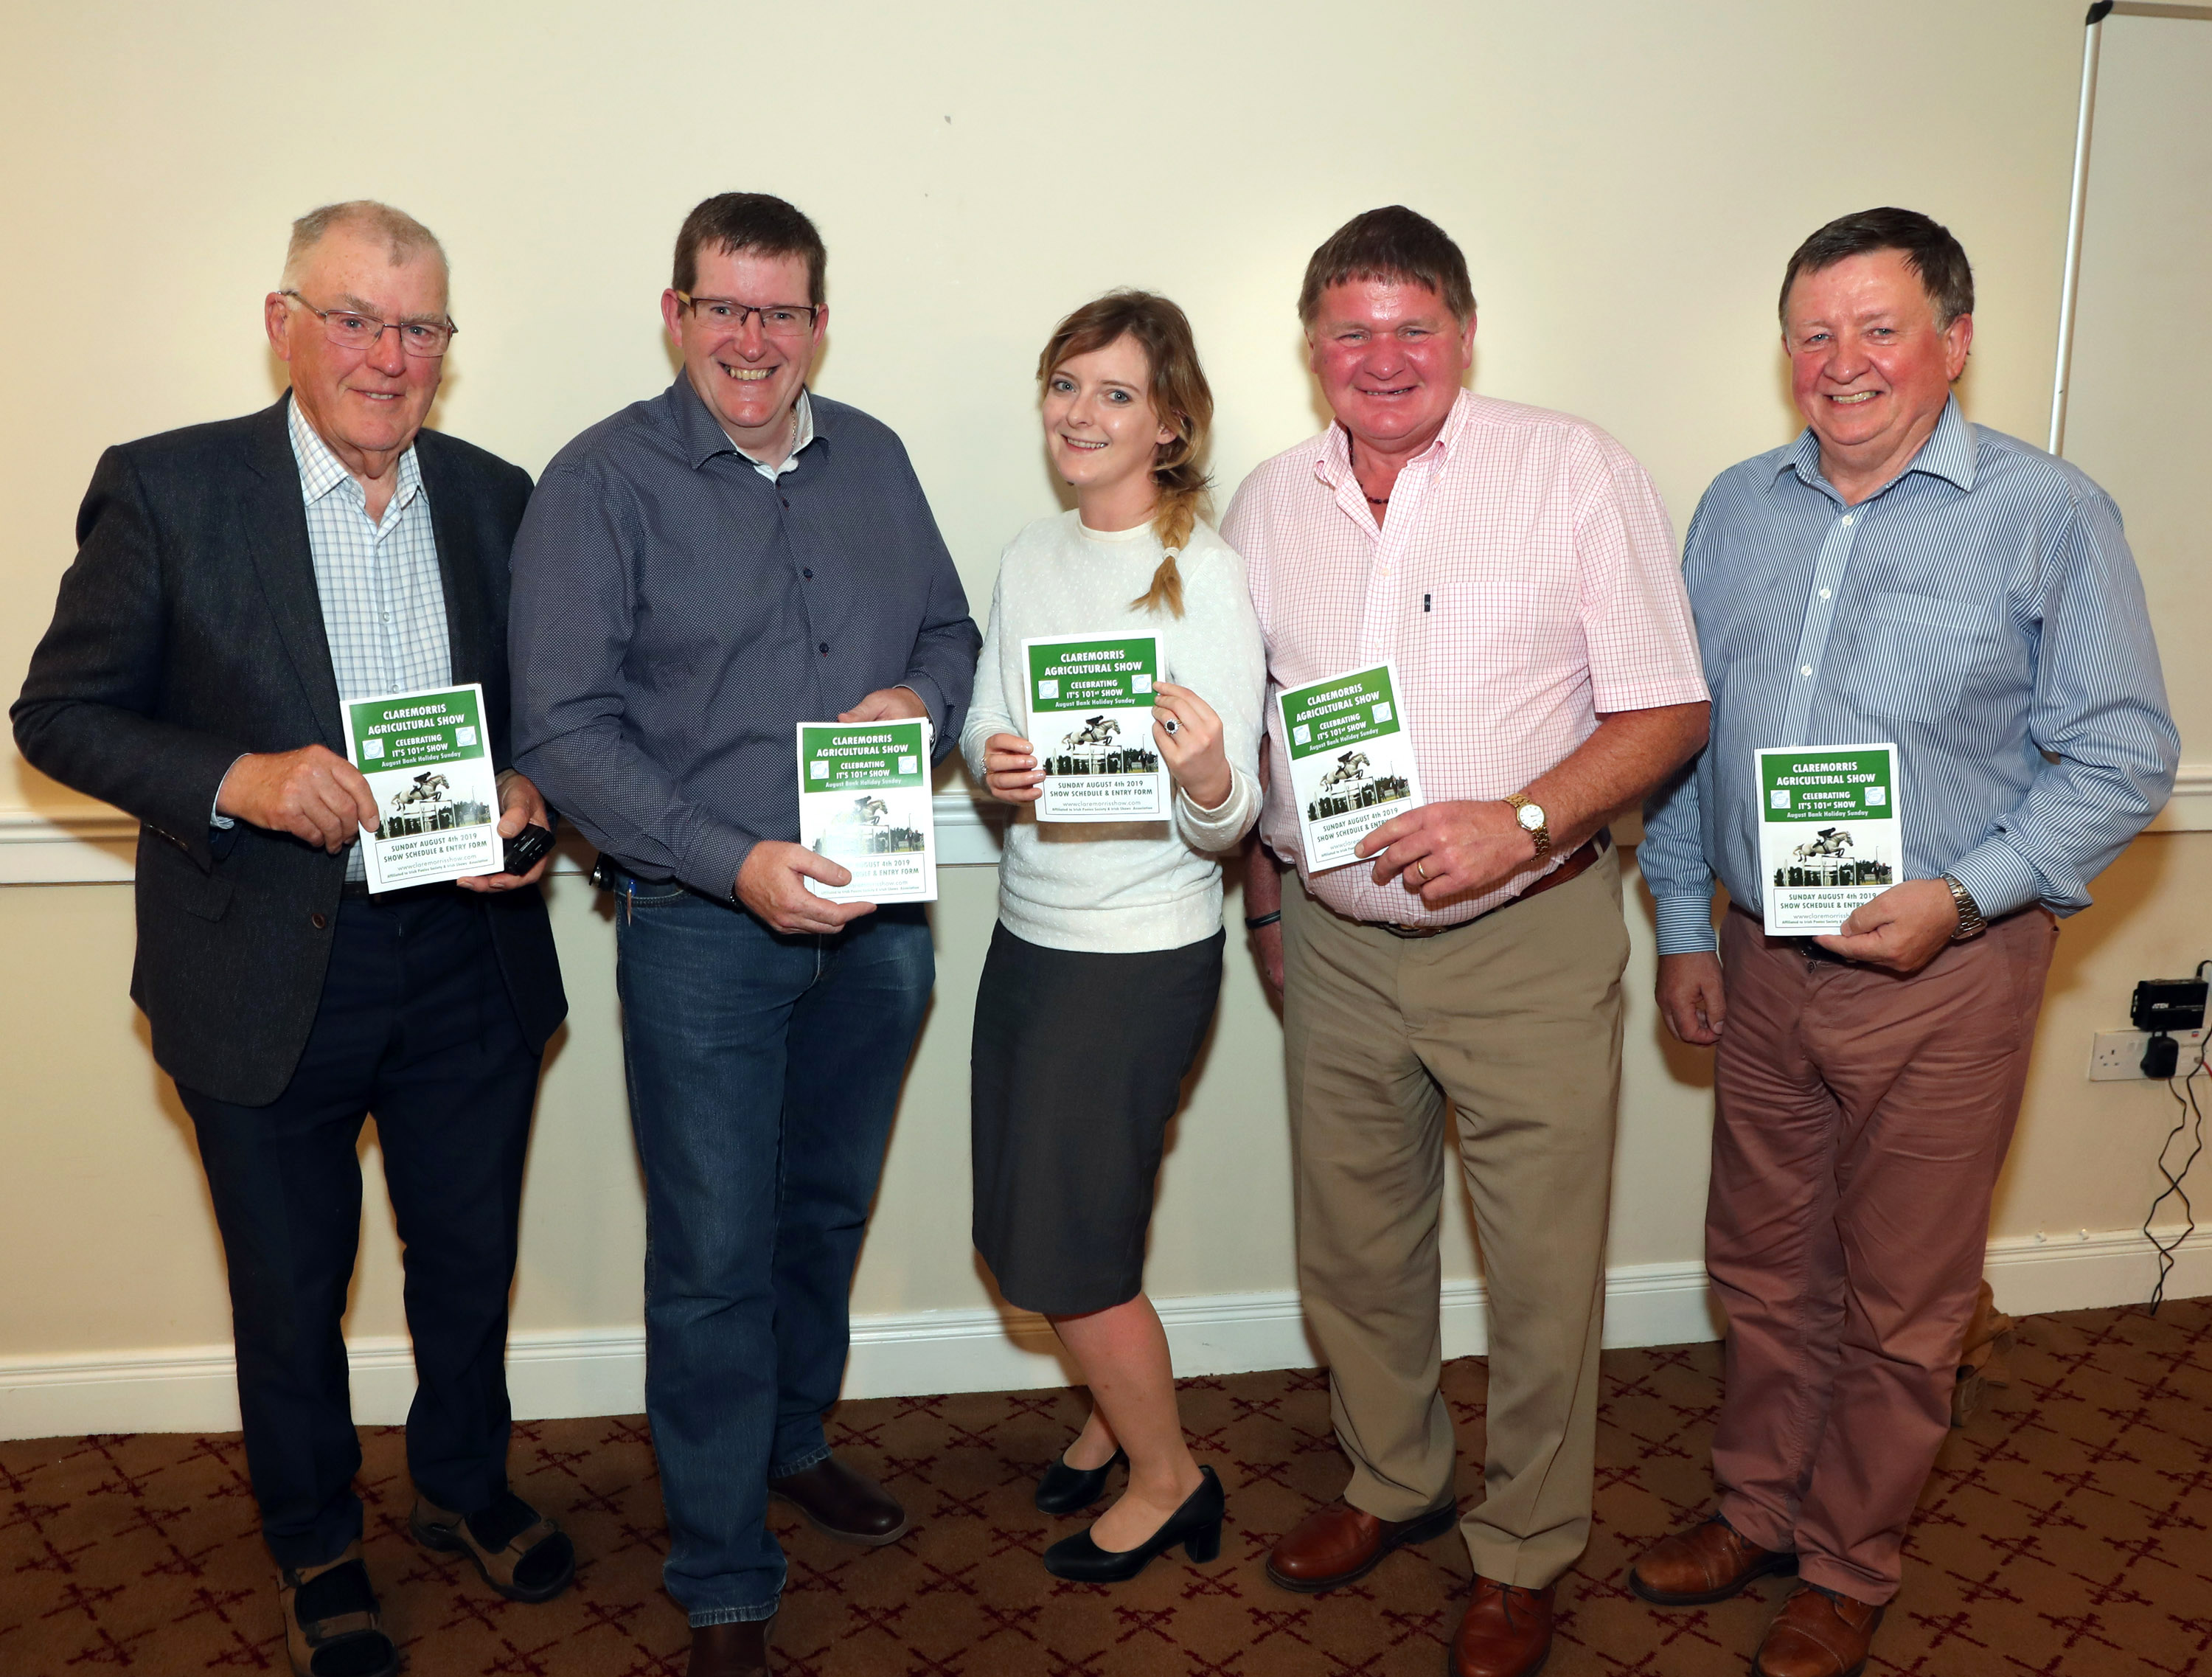 Roderick Maguire pictured with Tom Byrne, Chairman Claremorris Agri Show 2019 at the press night in the McWilliam Park Hotel, included are Avril Flannery, Pat Prendergast and James Preston. Photo © Michael Donnelly